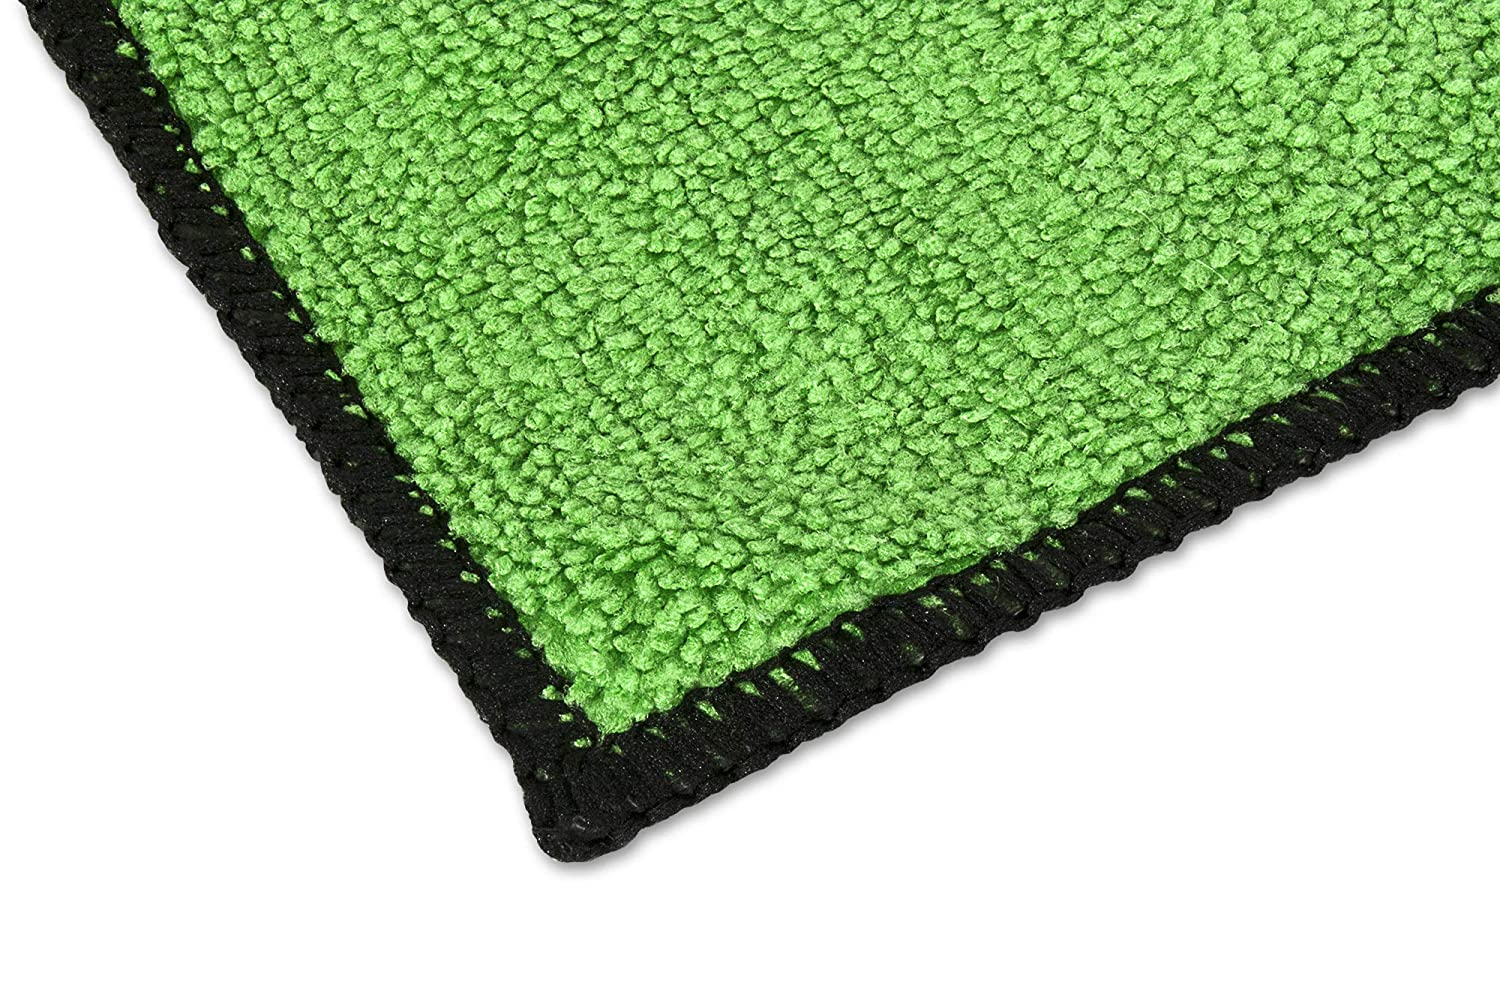 Eurow Microfiber Absorbent Cleaning Towels Green with Black Trim 12 x 12in 350 GSM Bulk Value 50 Pack Eurow /& O/'Reilly Corp.